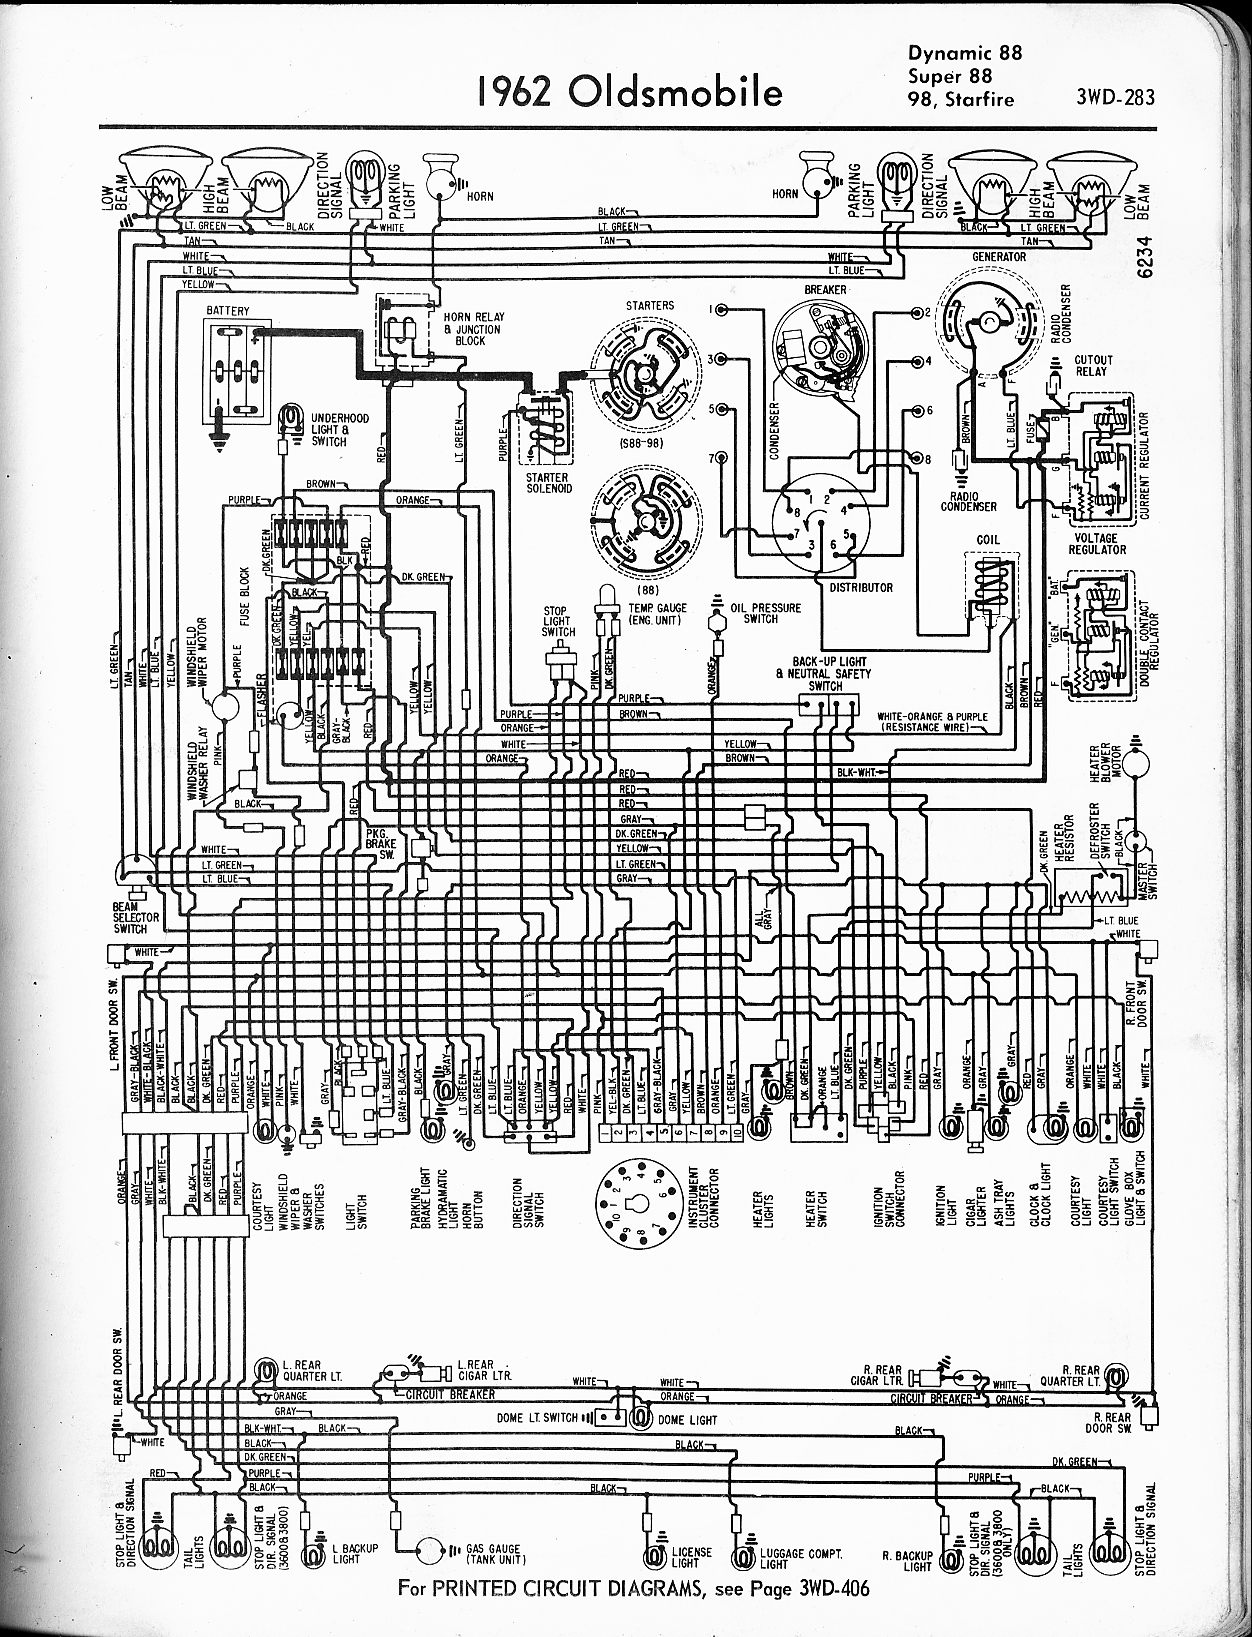 1964 oldsmobile wiring diagram wiring diagram schematics 1955 ford wiring diagram free wiring